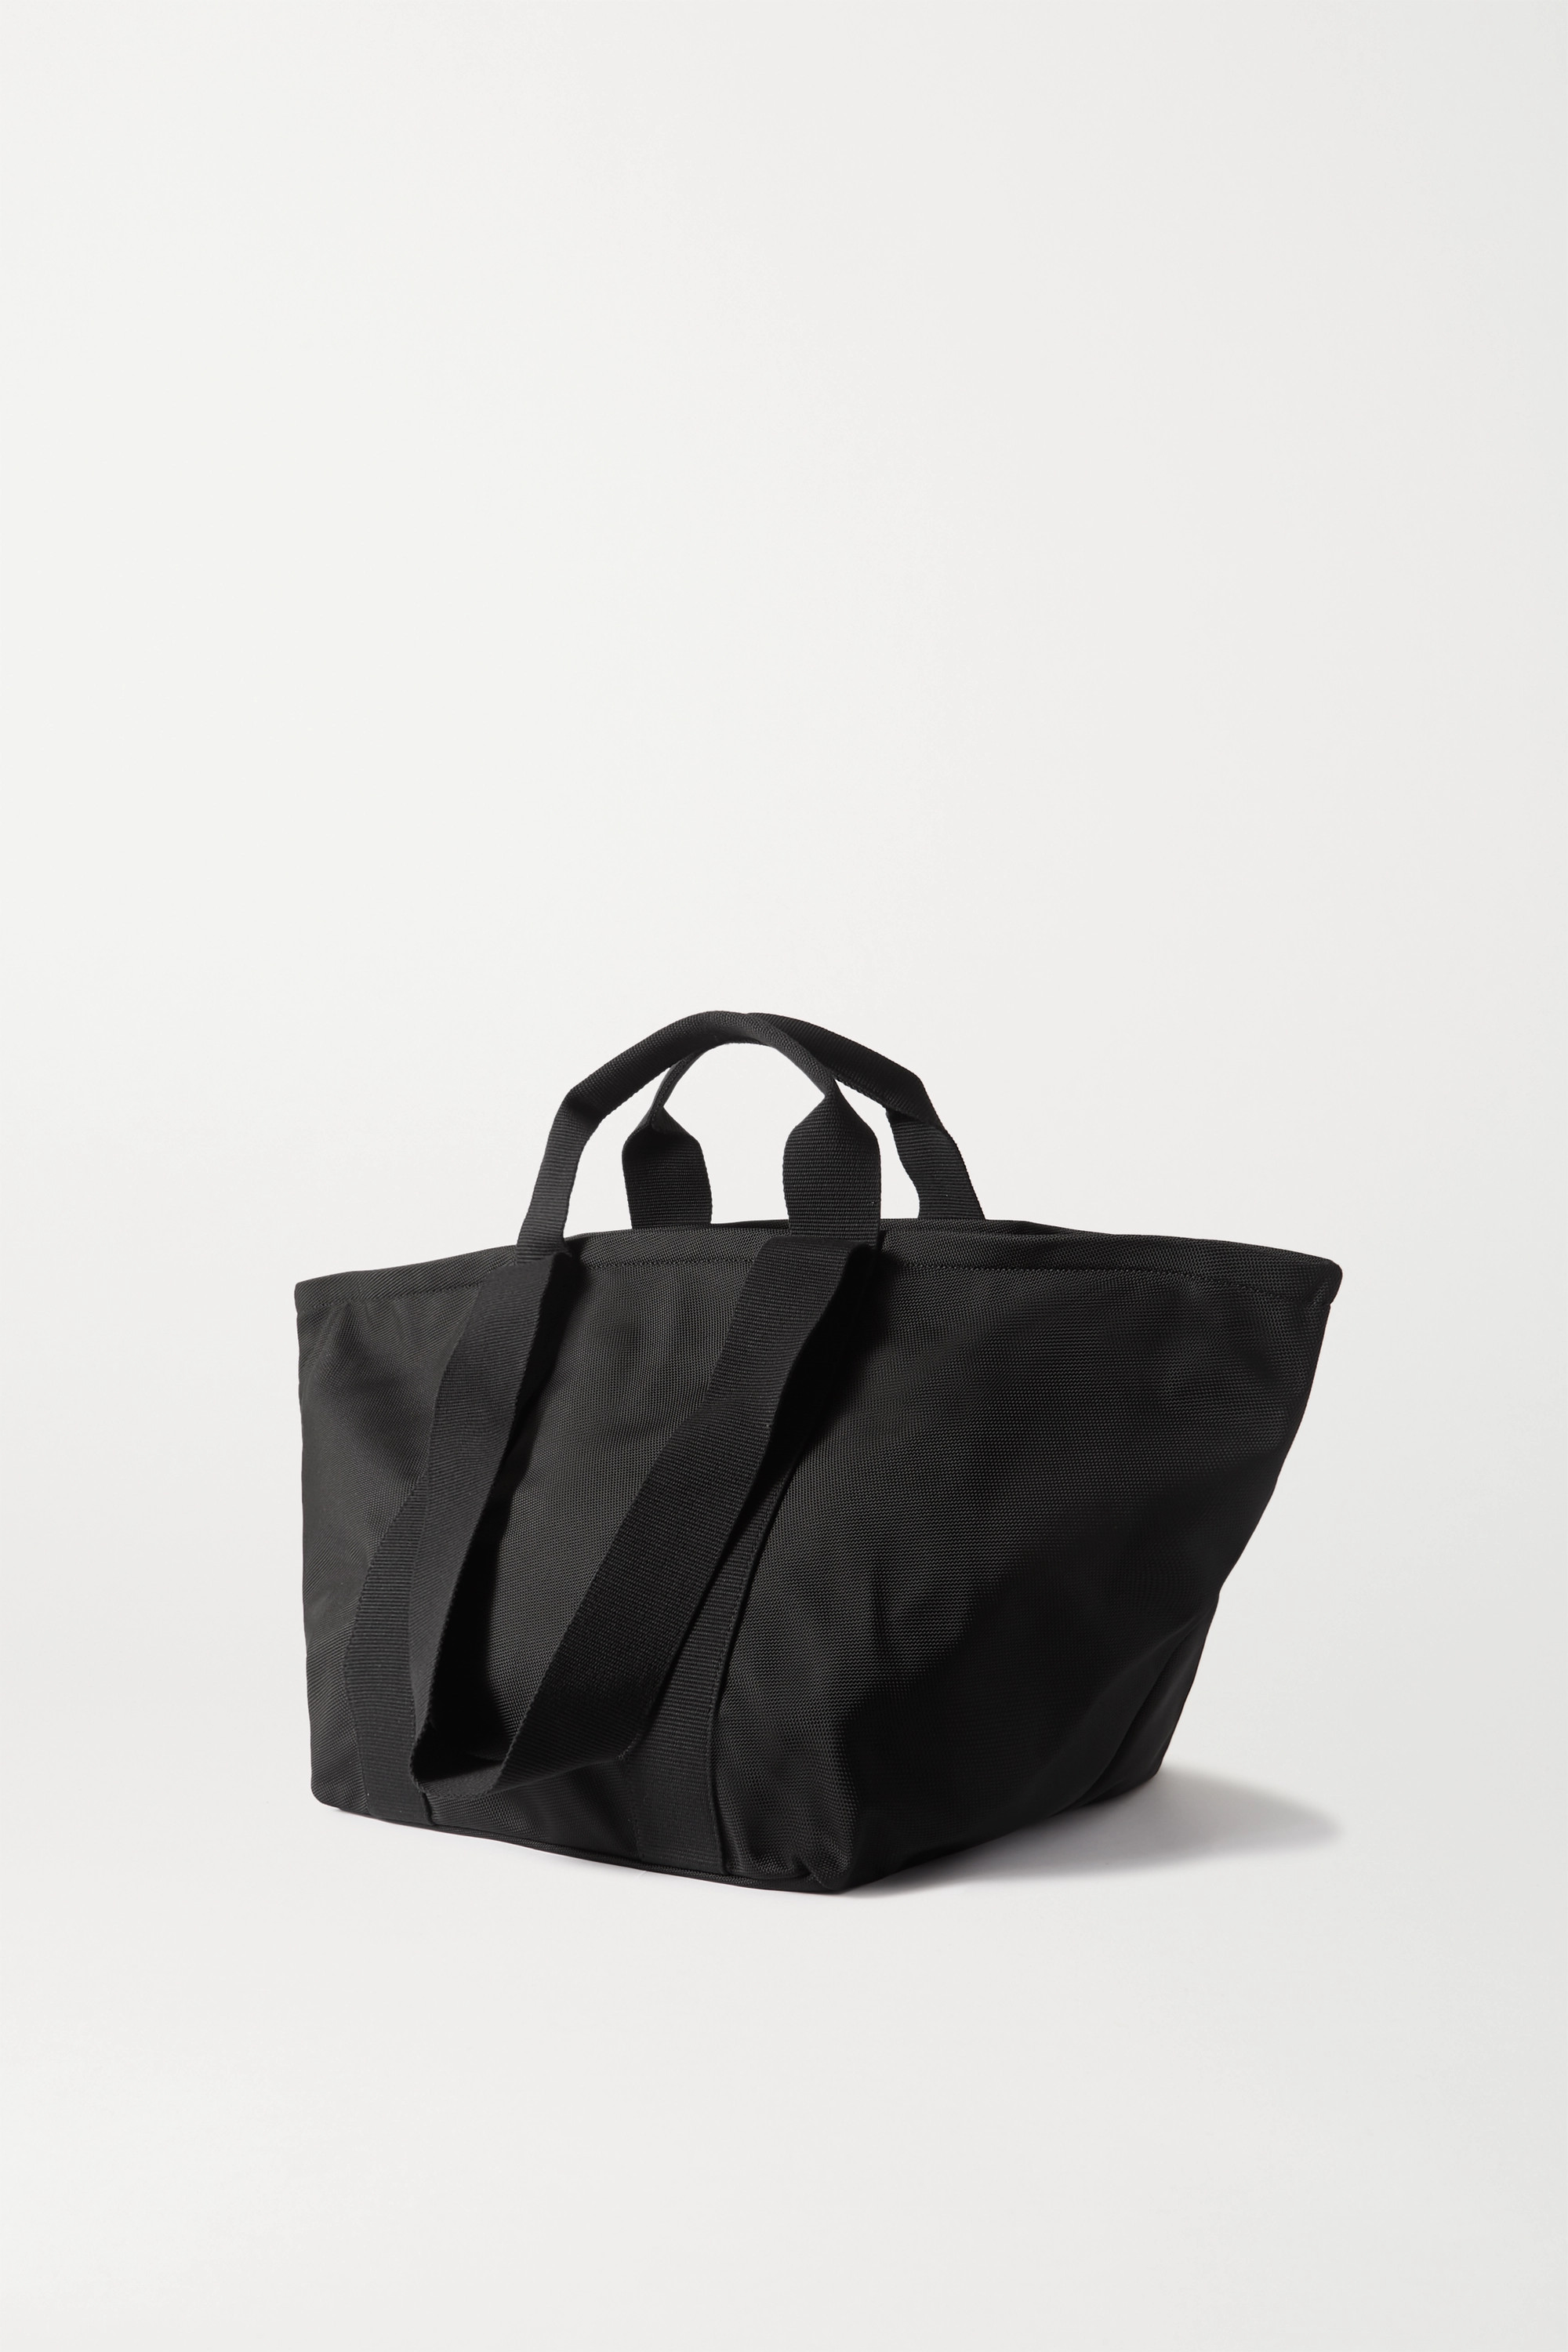 Alexander Wang Primal large embroidered nylon tote